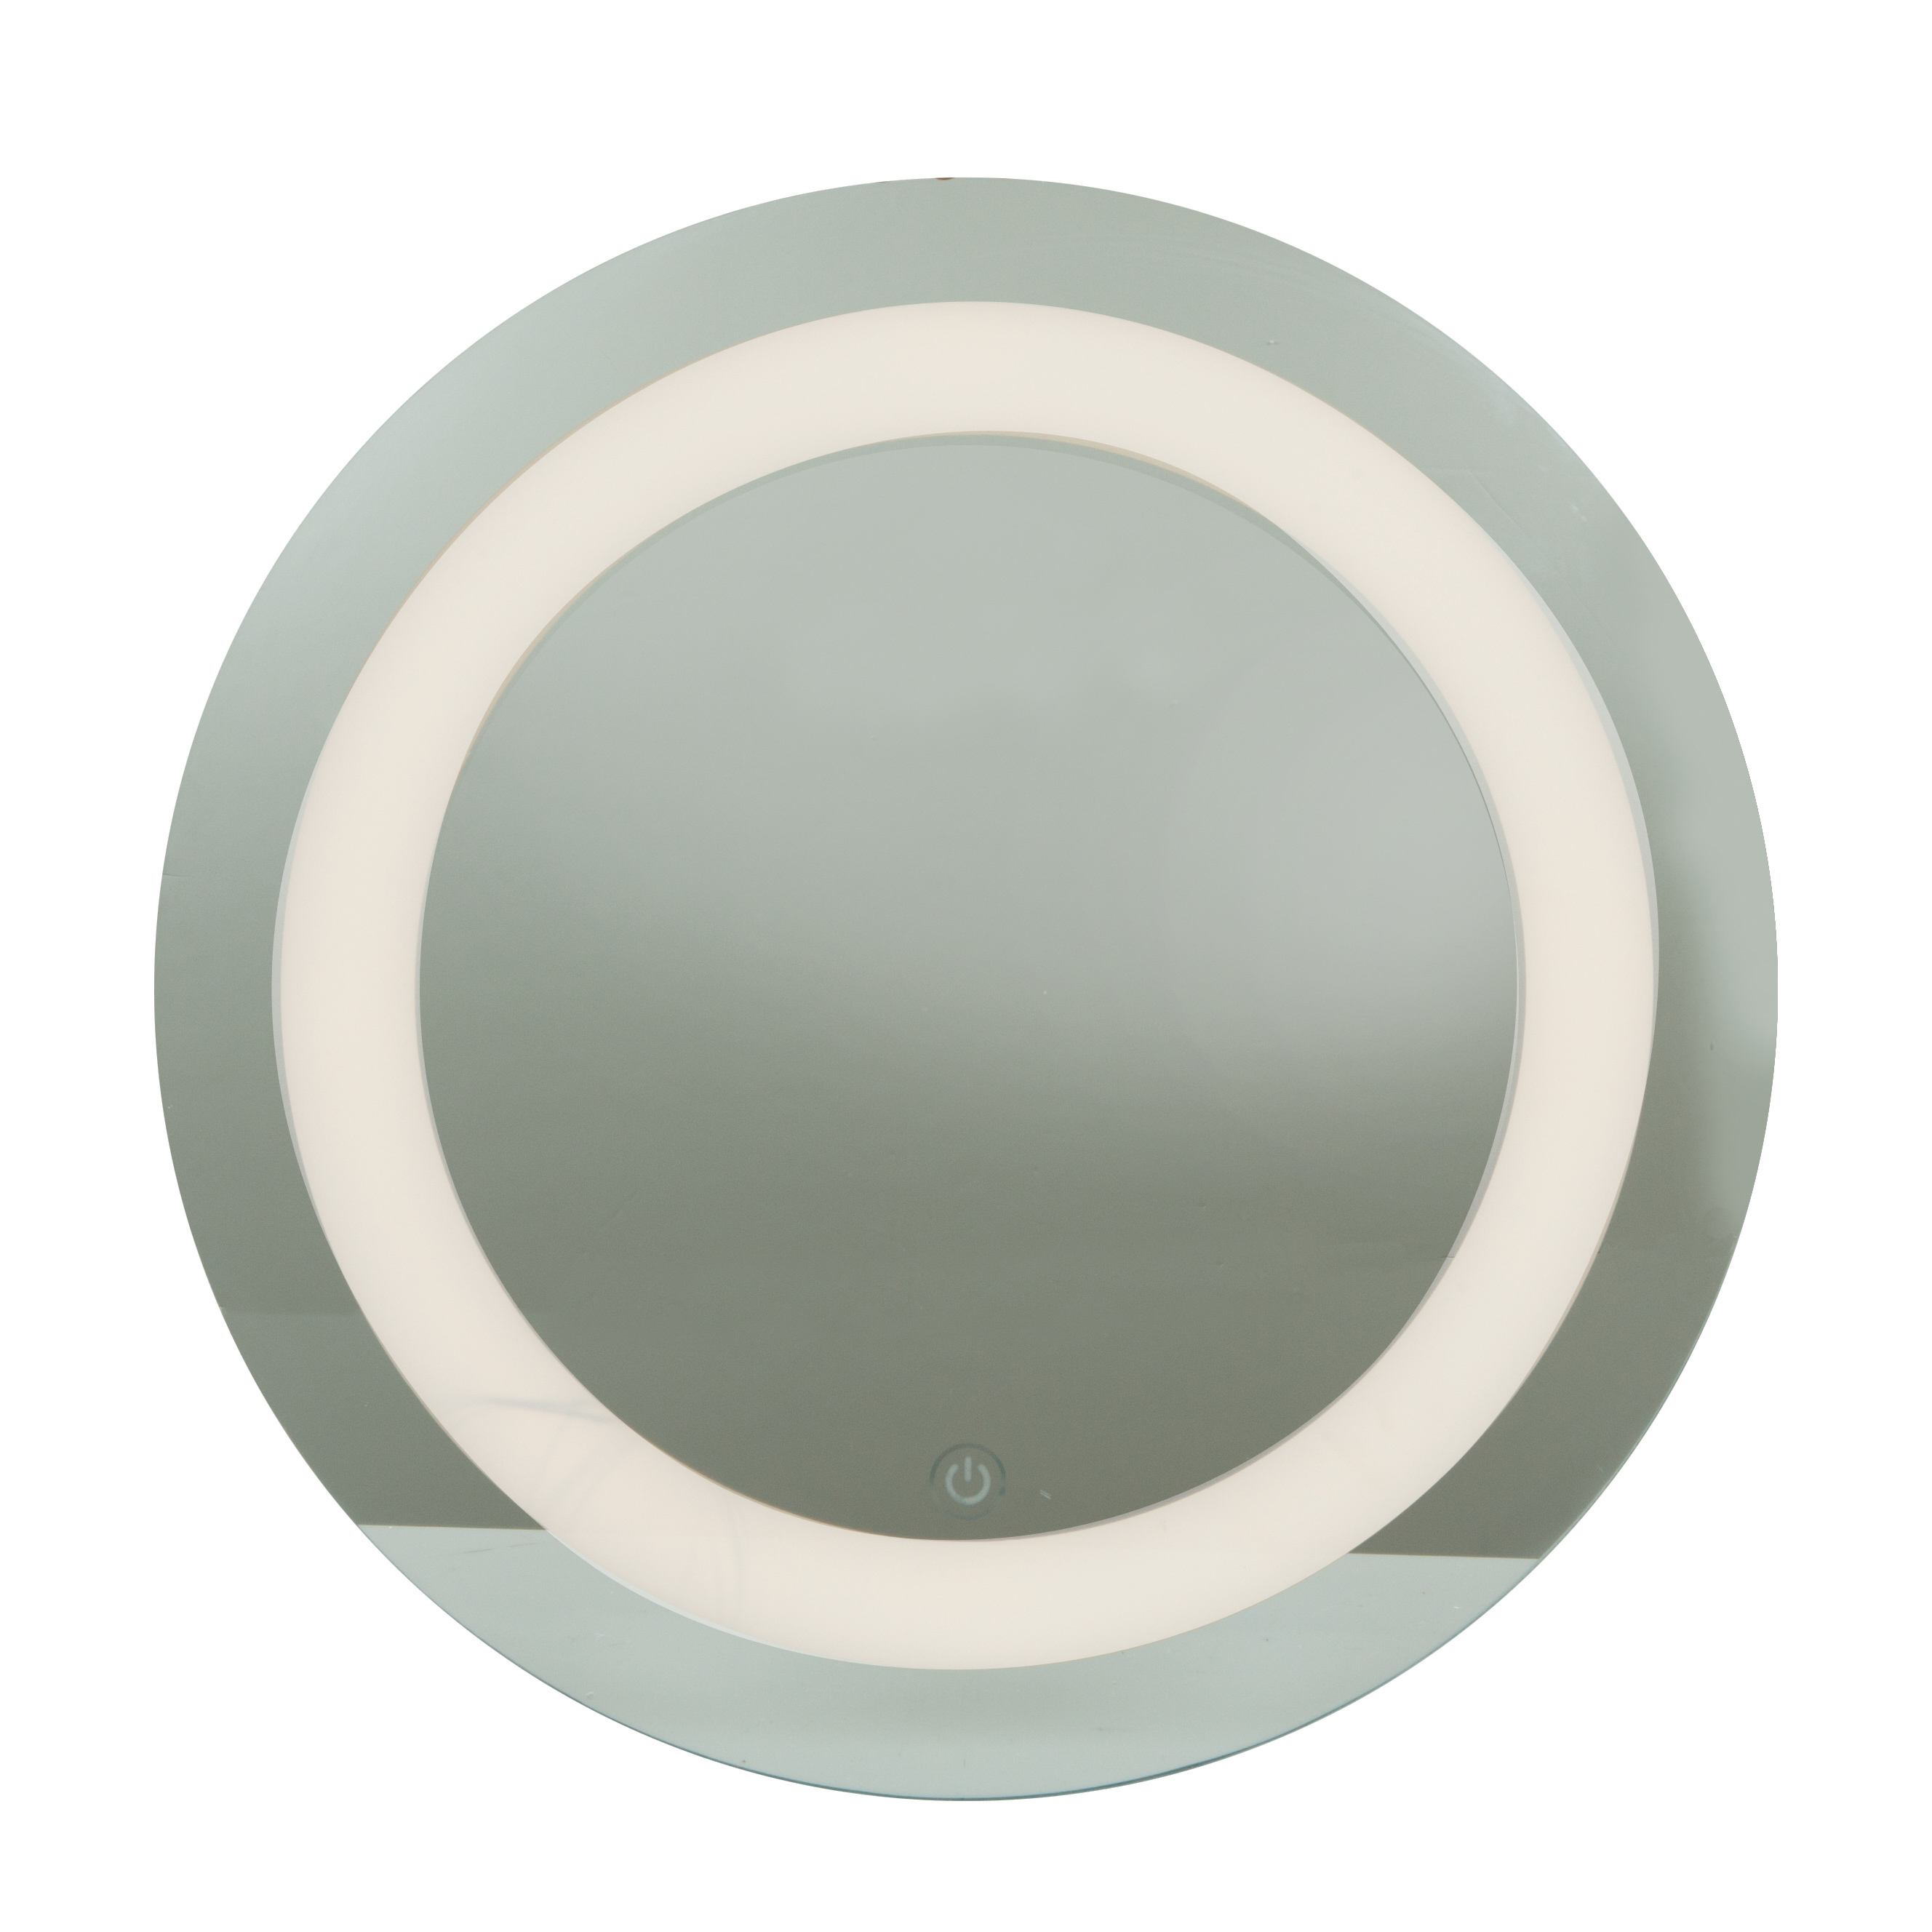 Completely new Spa Round Dimmable LED Mirror by Access | 70085LEDD-MIR CP25